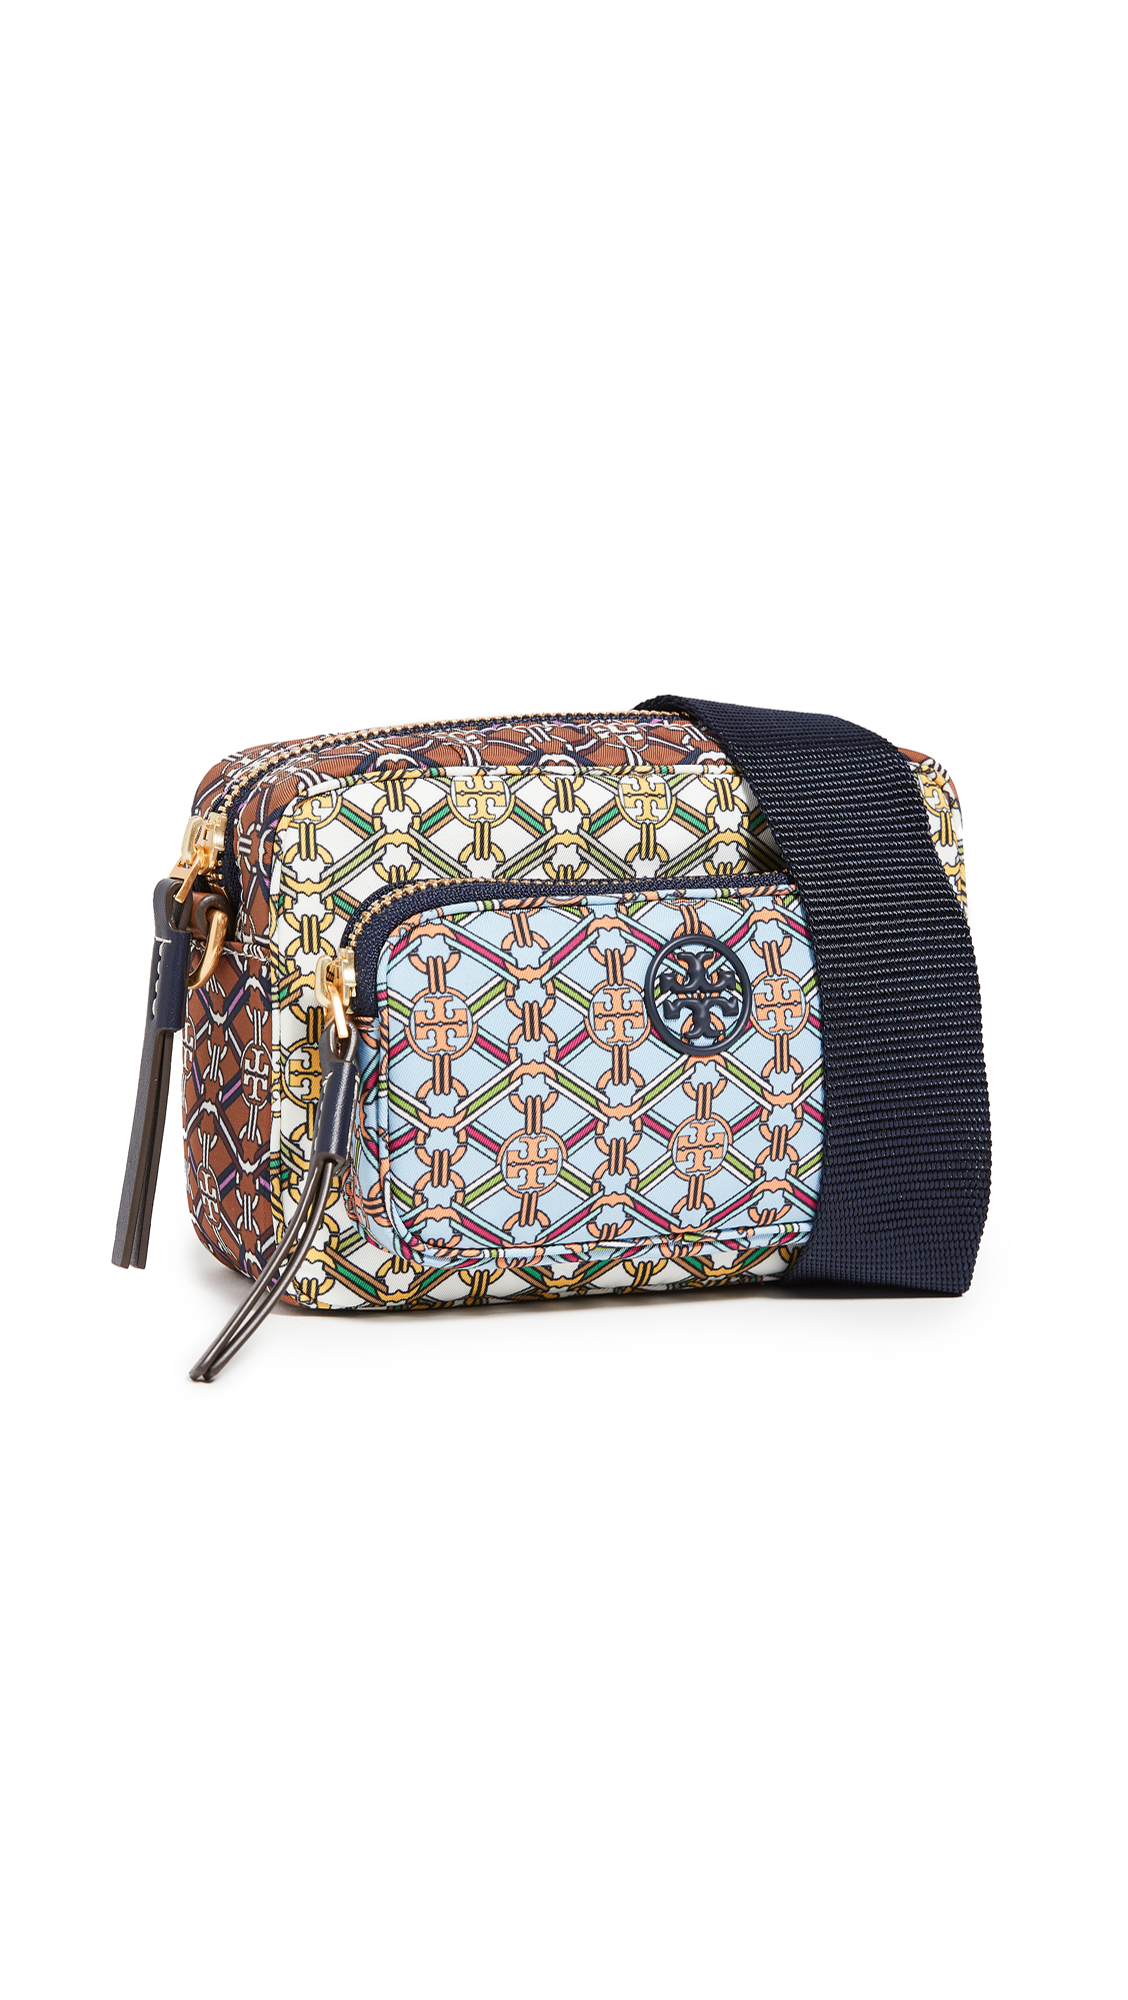 Tory Burch Piper Printed Mini Bag